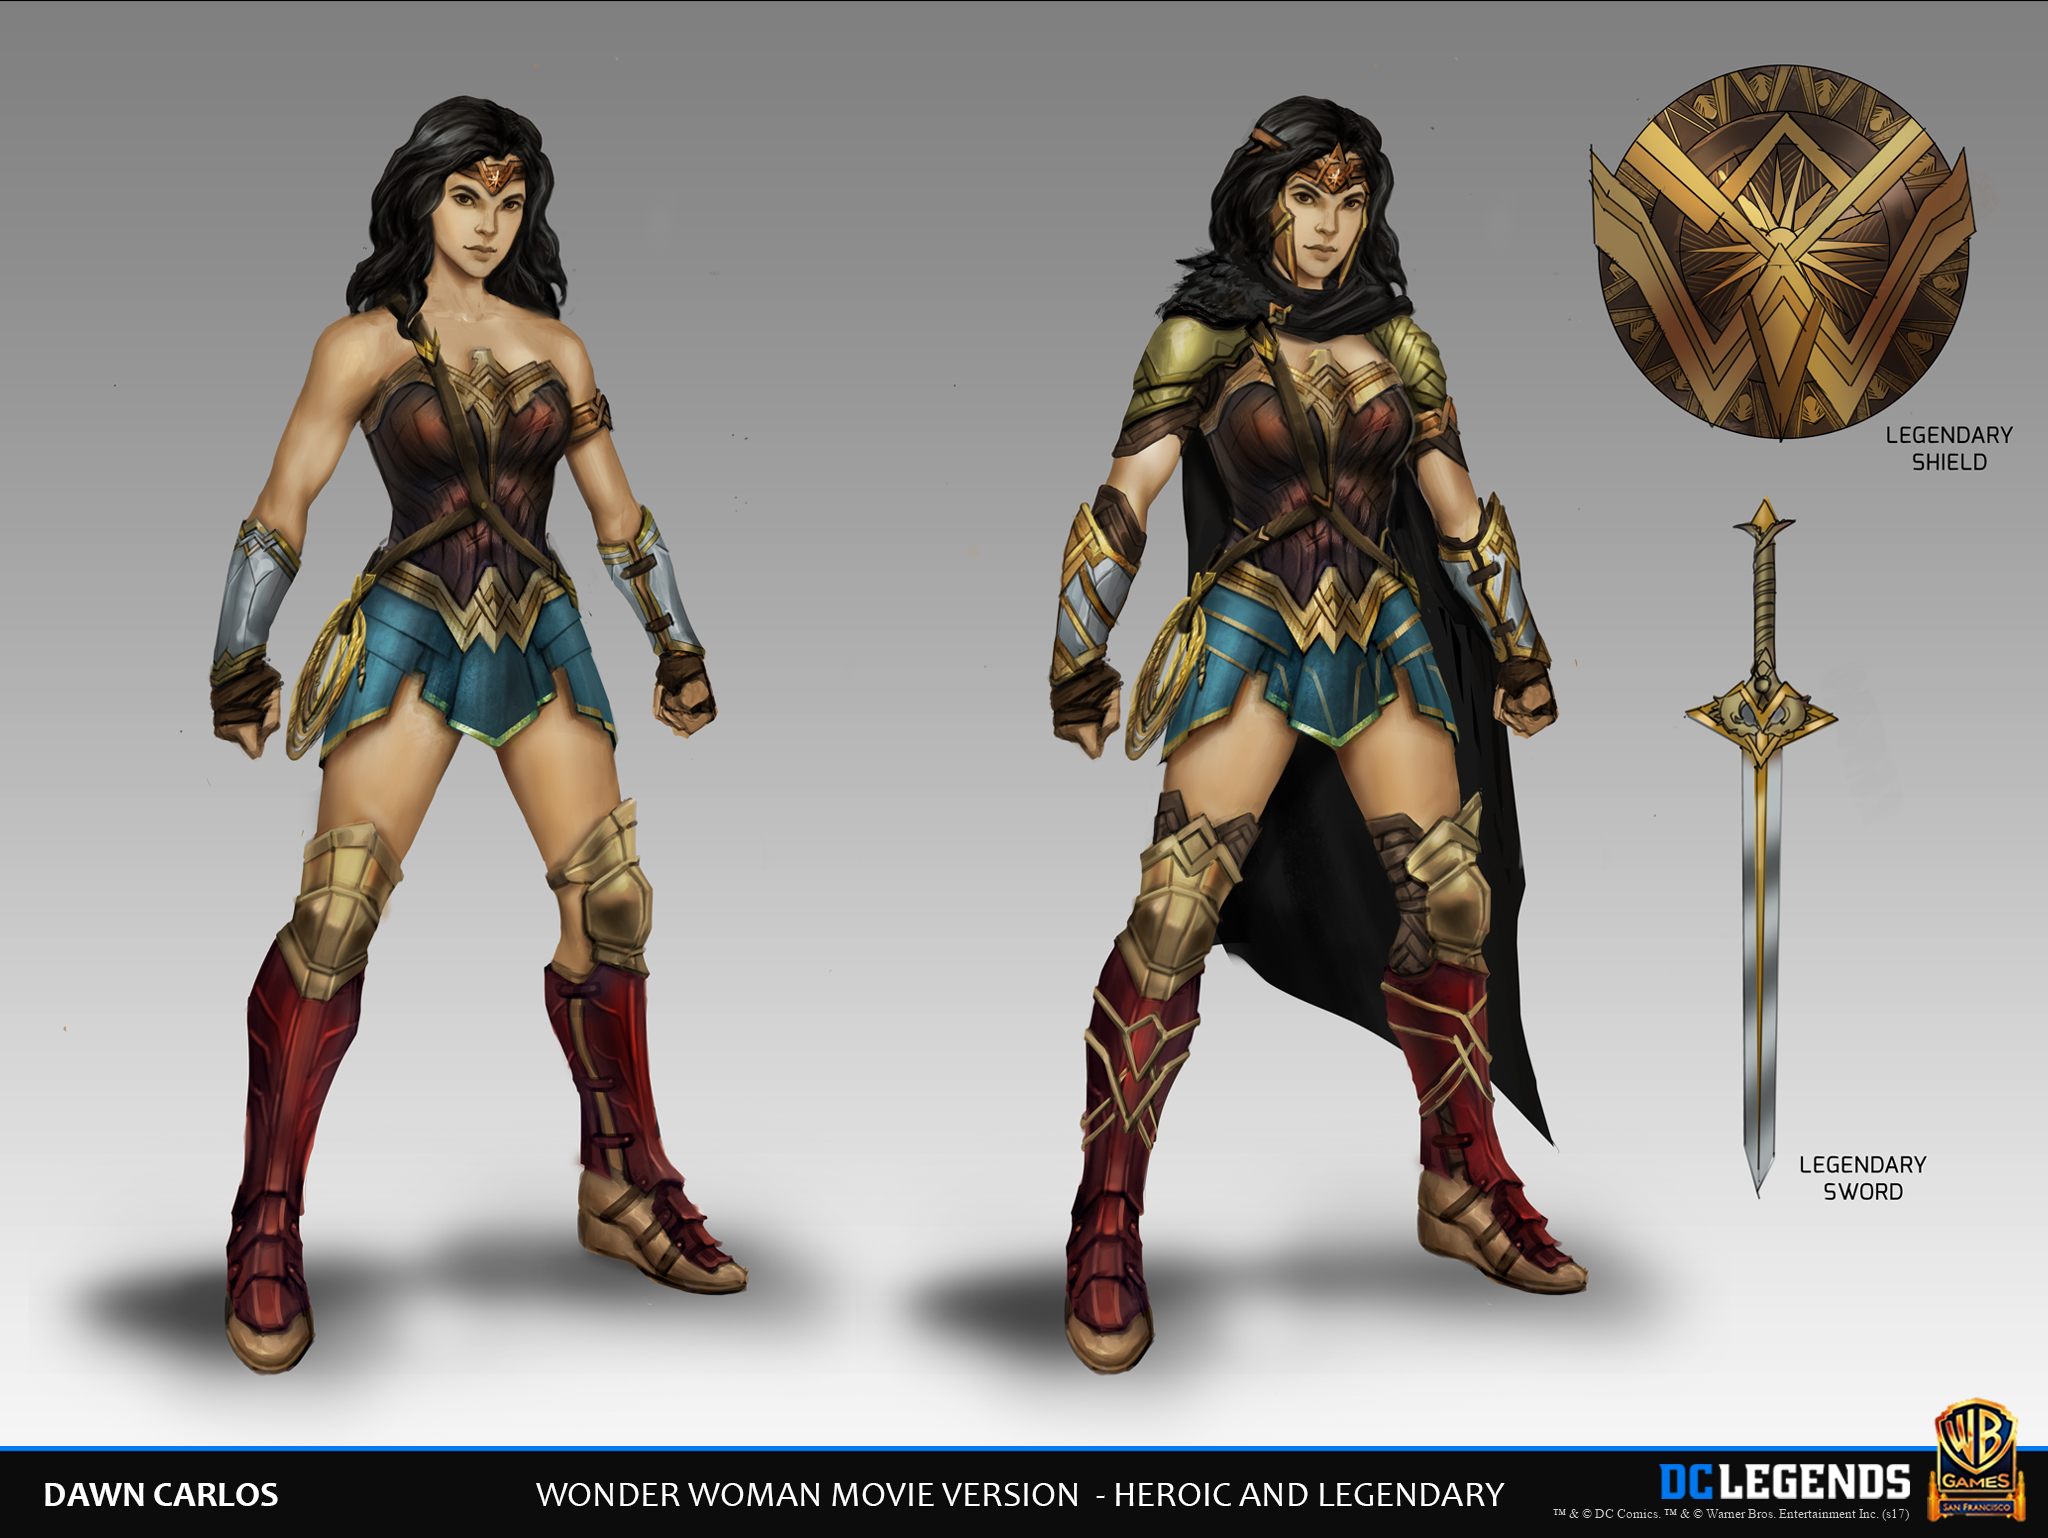 dcLegends_DawnCarlos_submissions_characterConcept_wwMovie.jpg